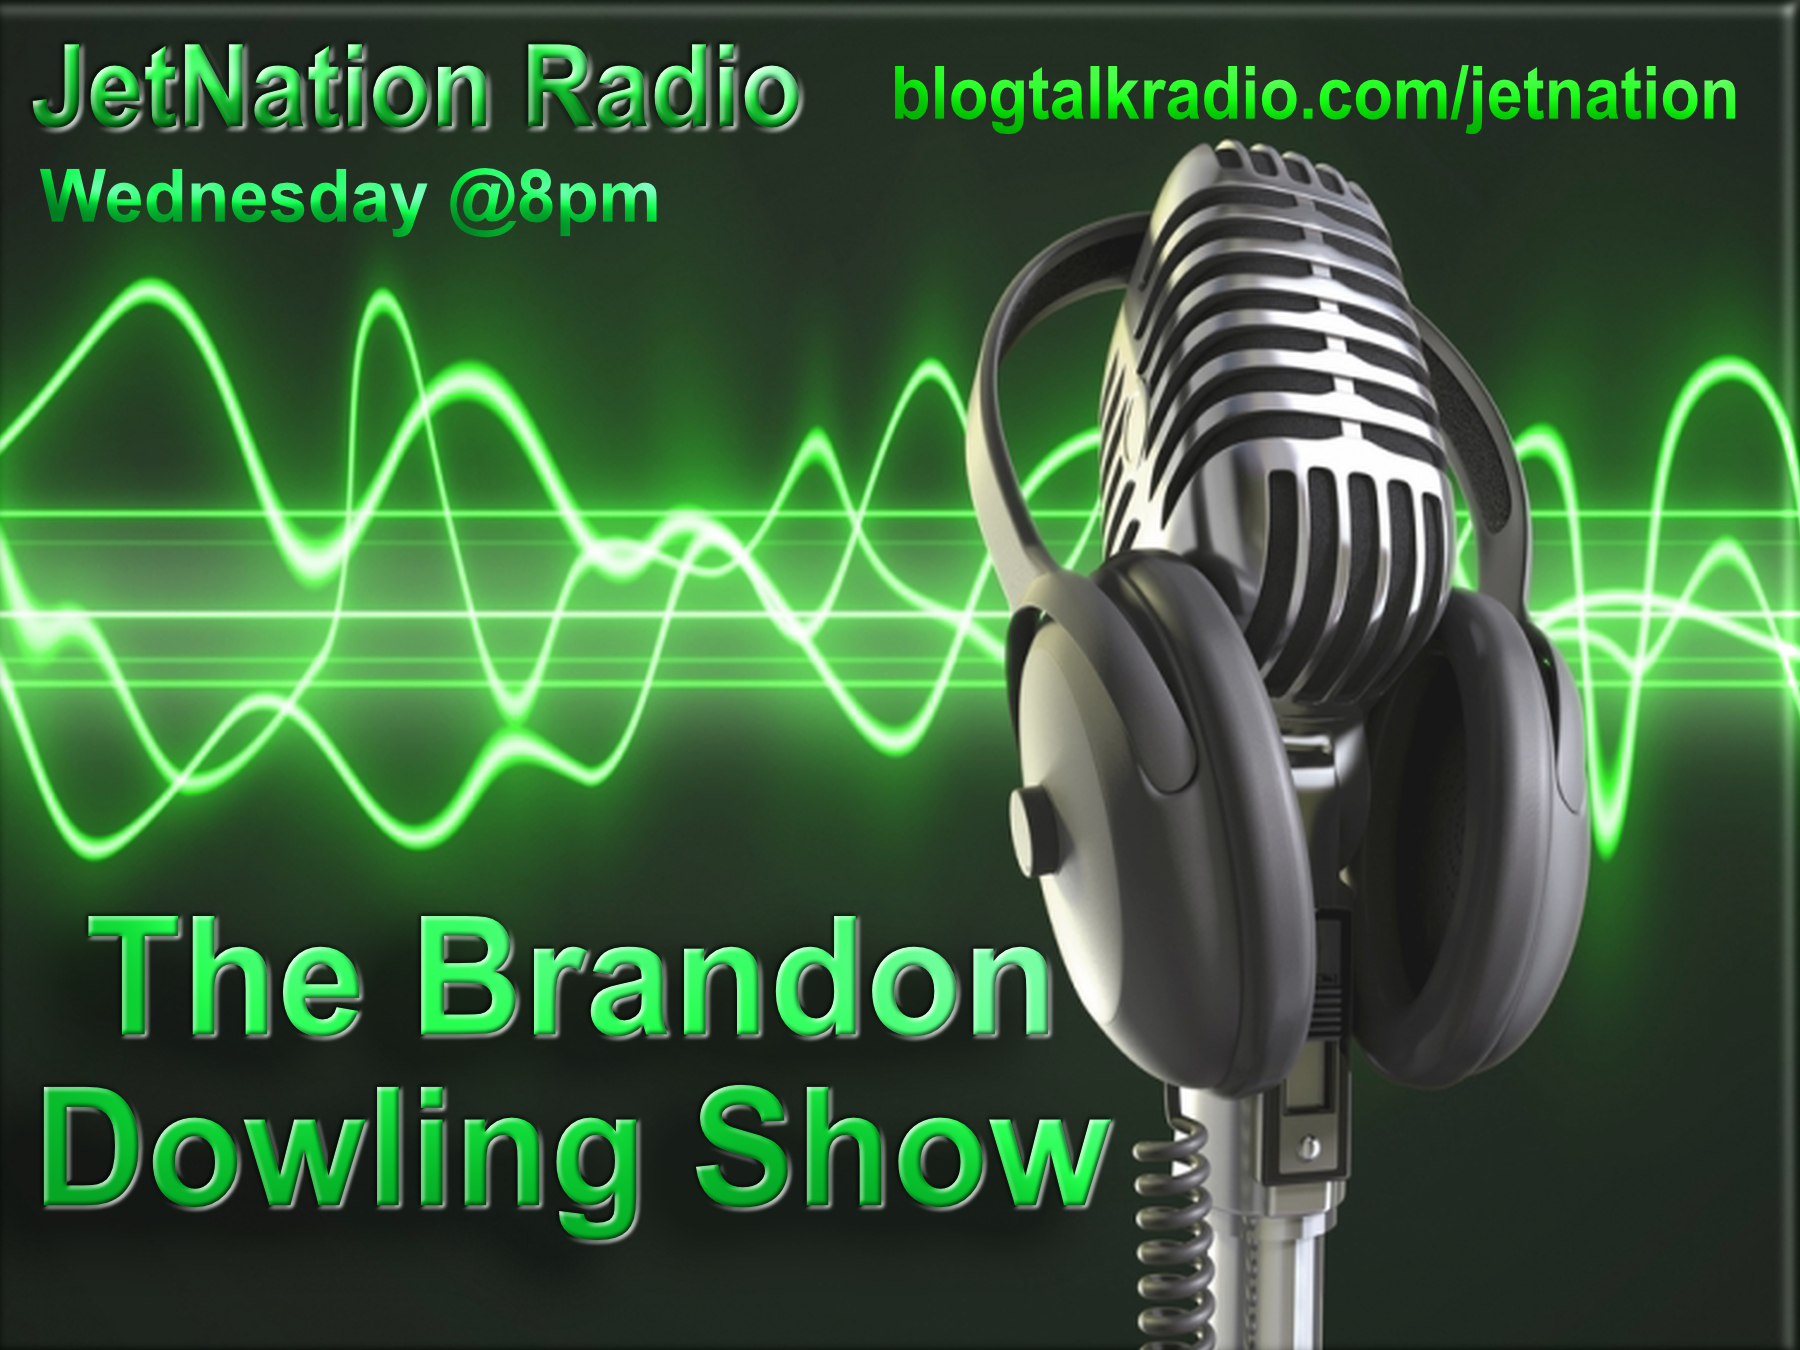 The Brandon Dowling Show; NY Jets Are 3 and 1